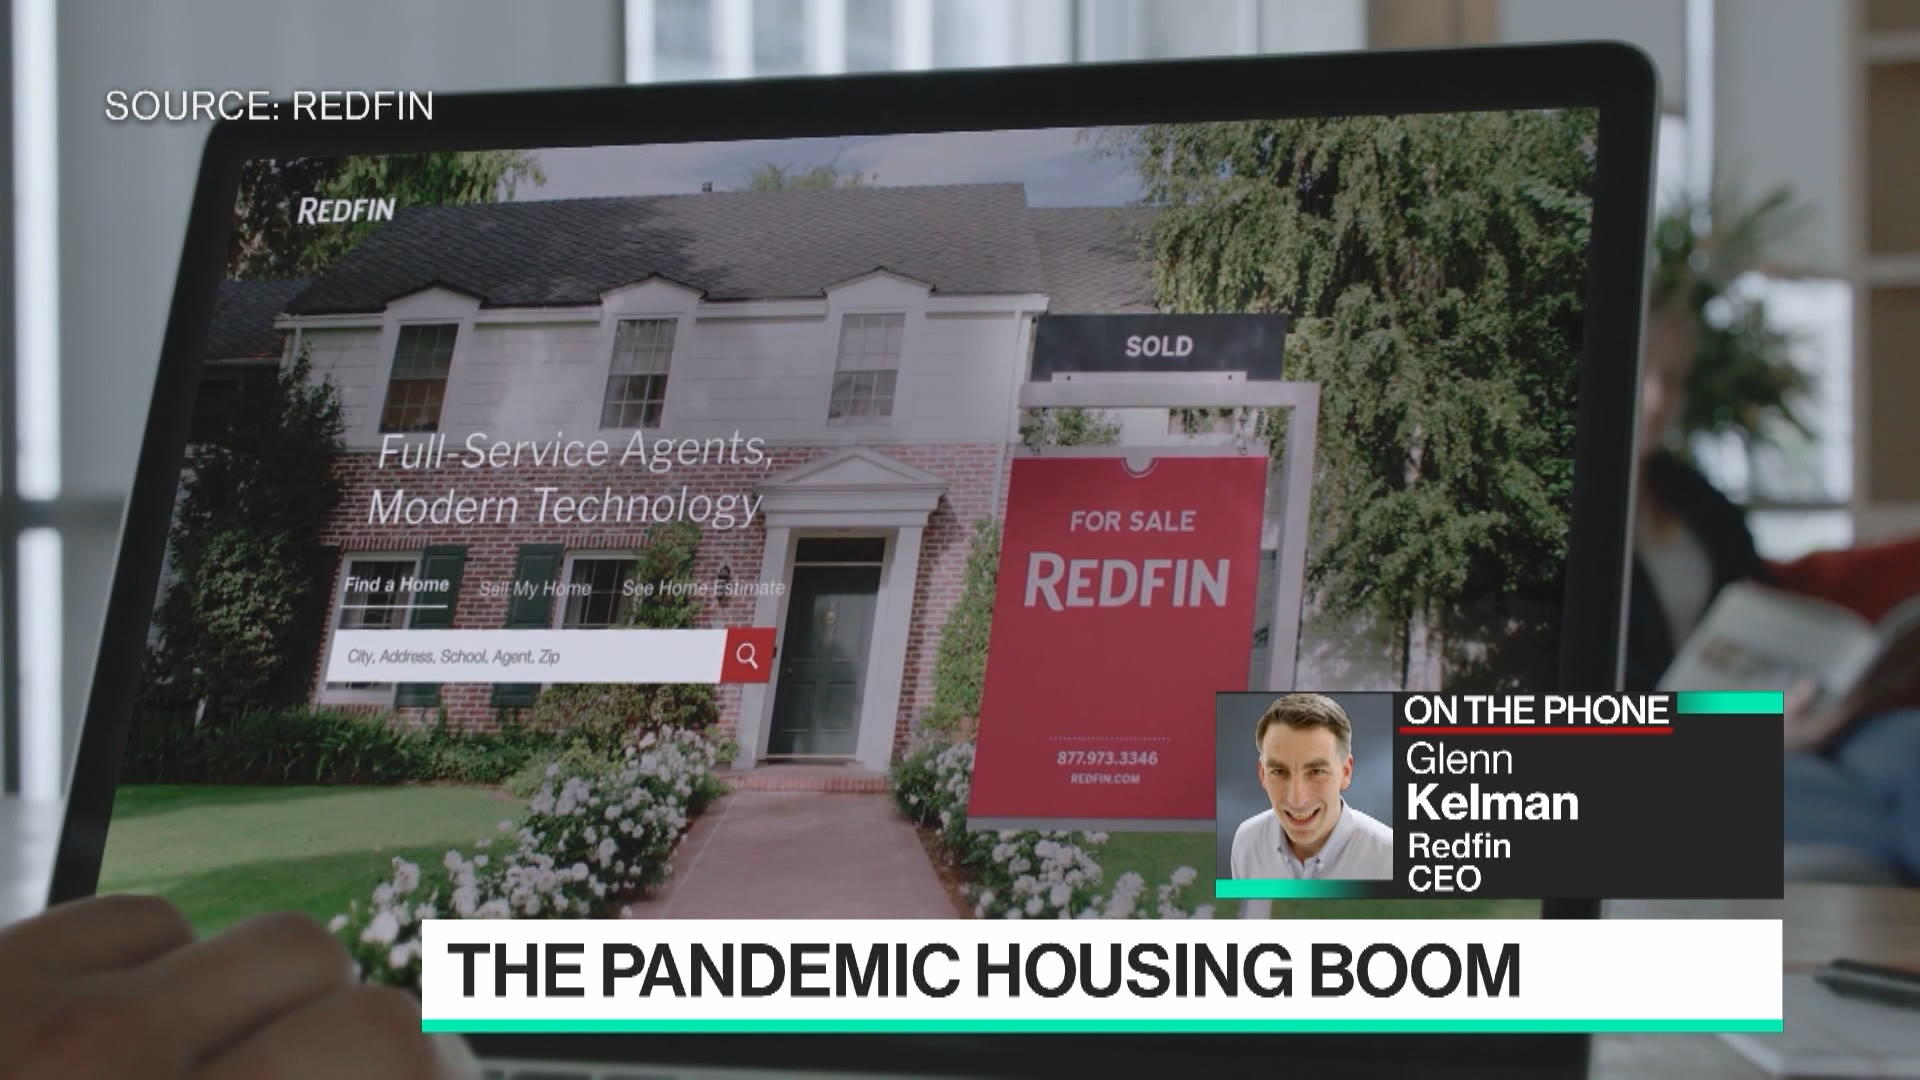 Redfin CEO on Pandemic Housing Boom